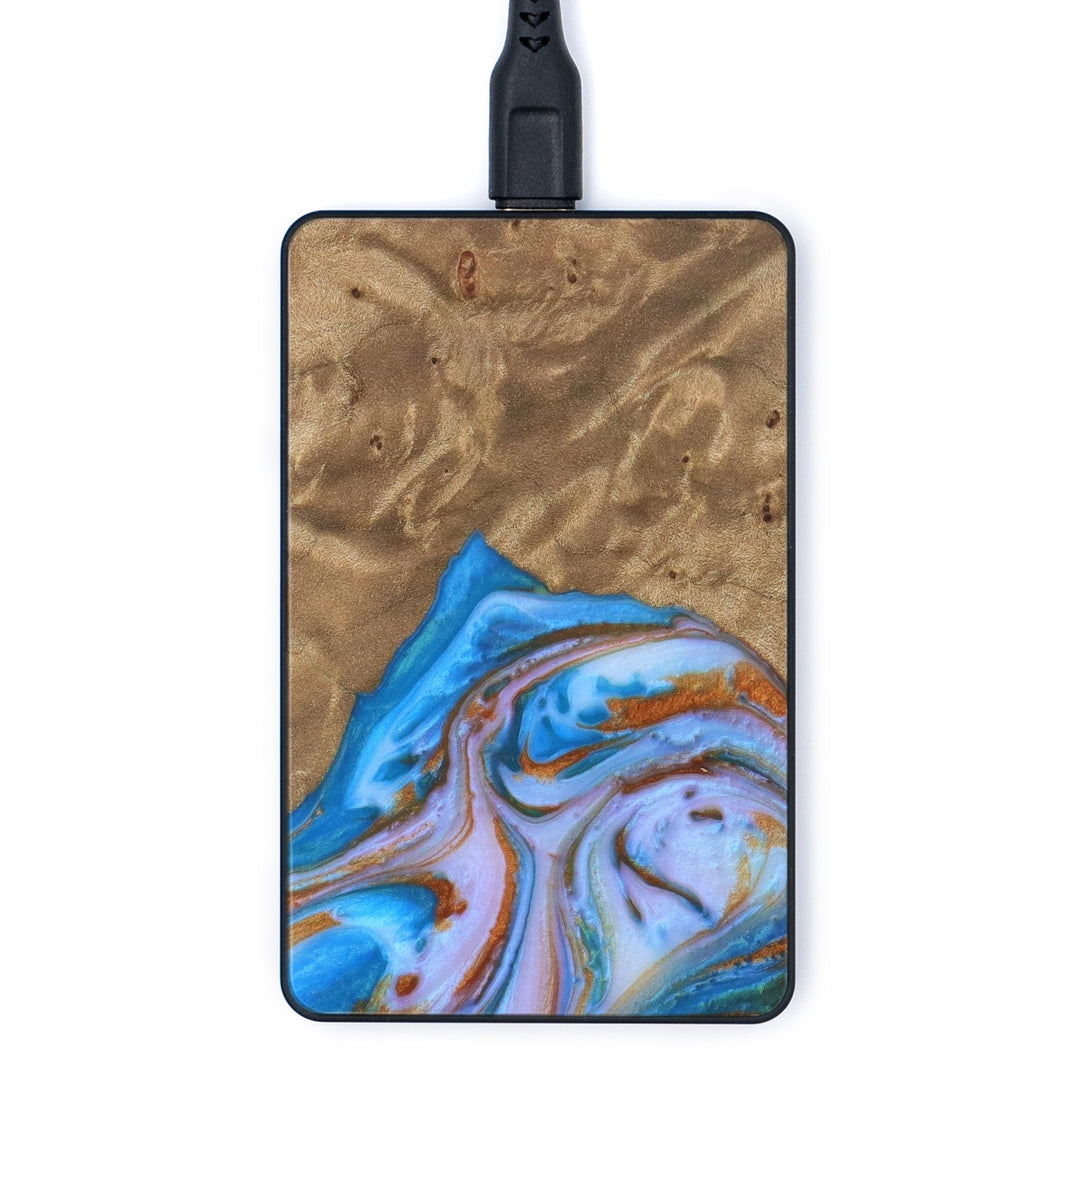 Thin Wireless Charger - Atlanta (Teal & Gold, 335907)